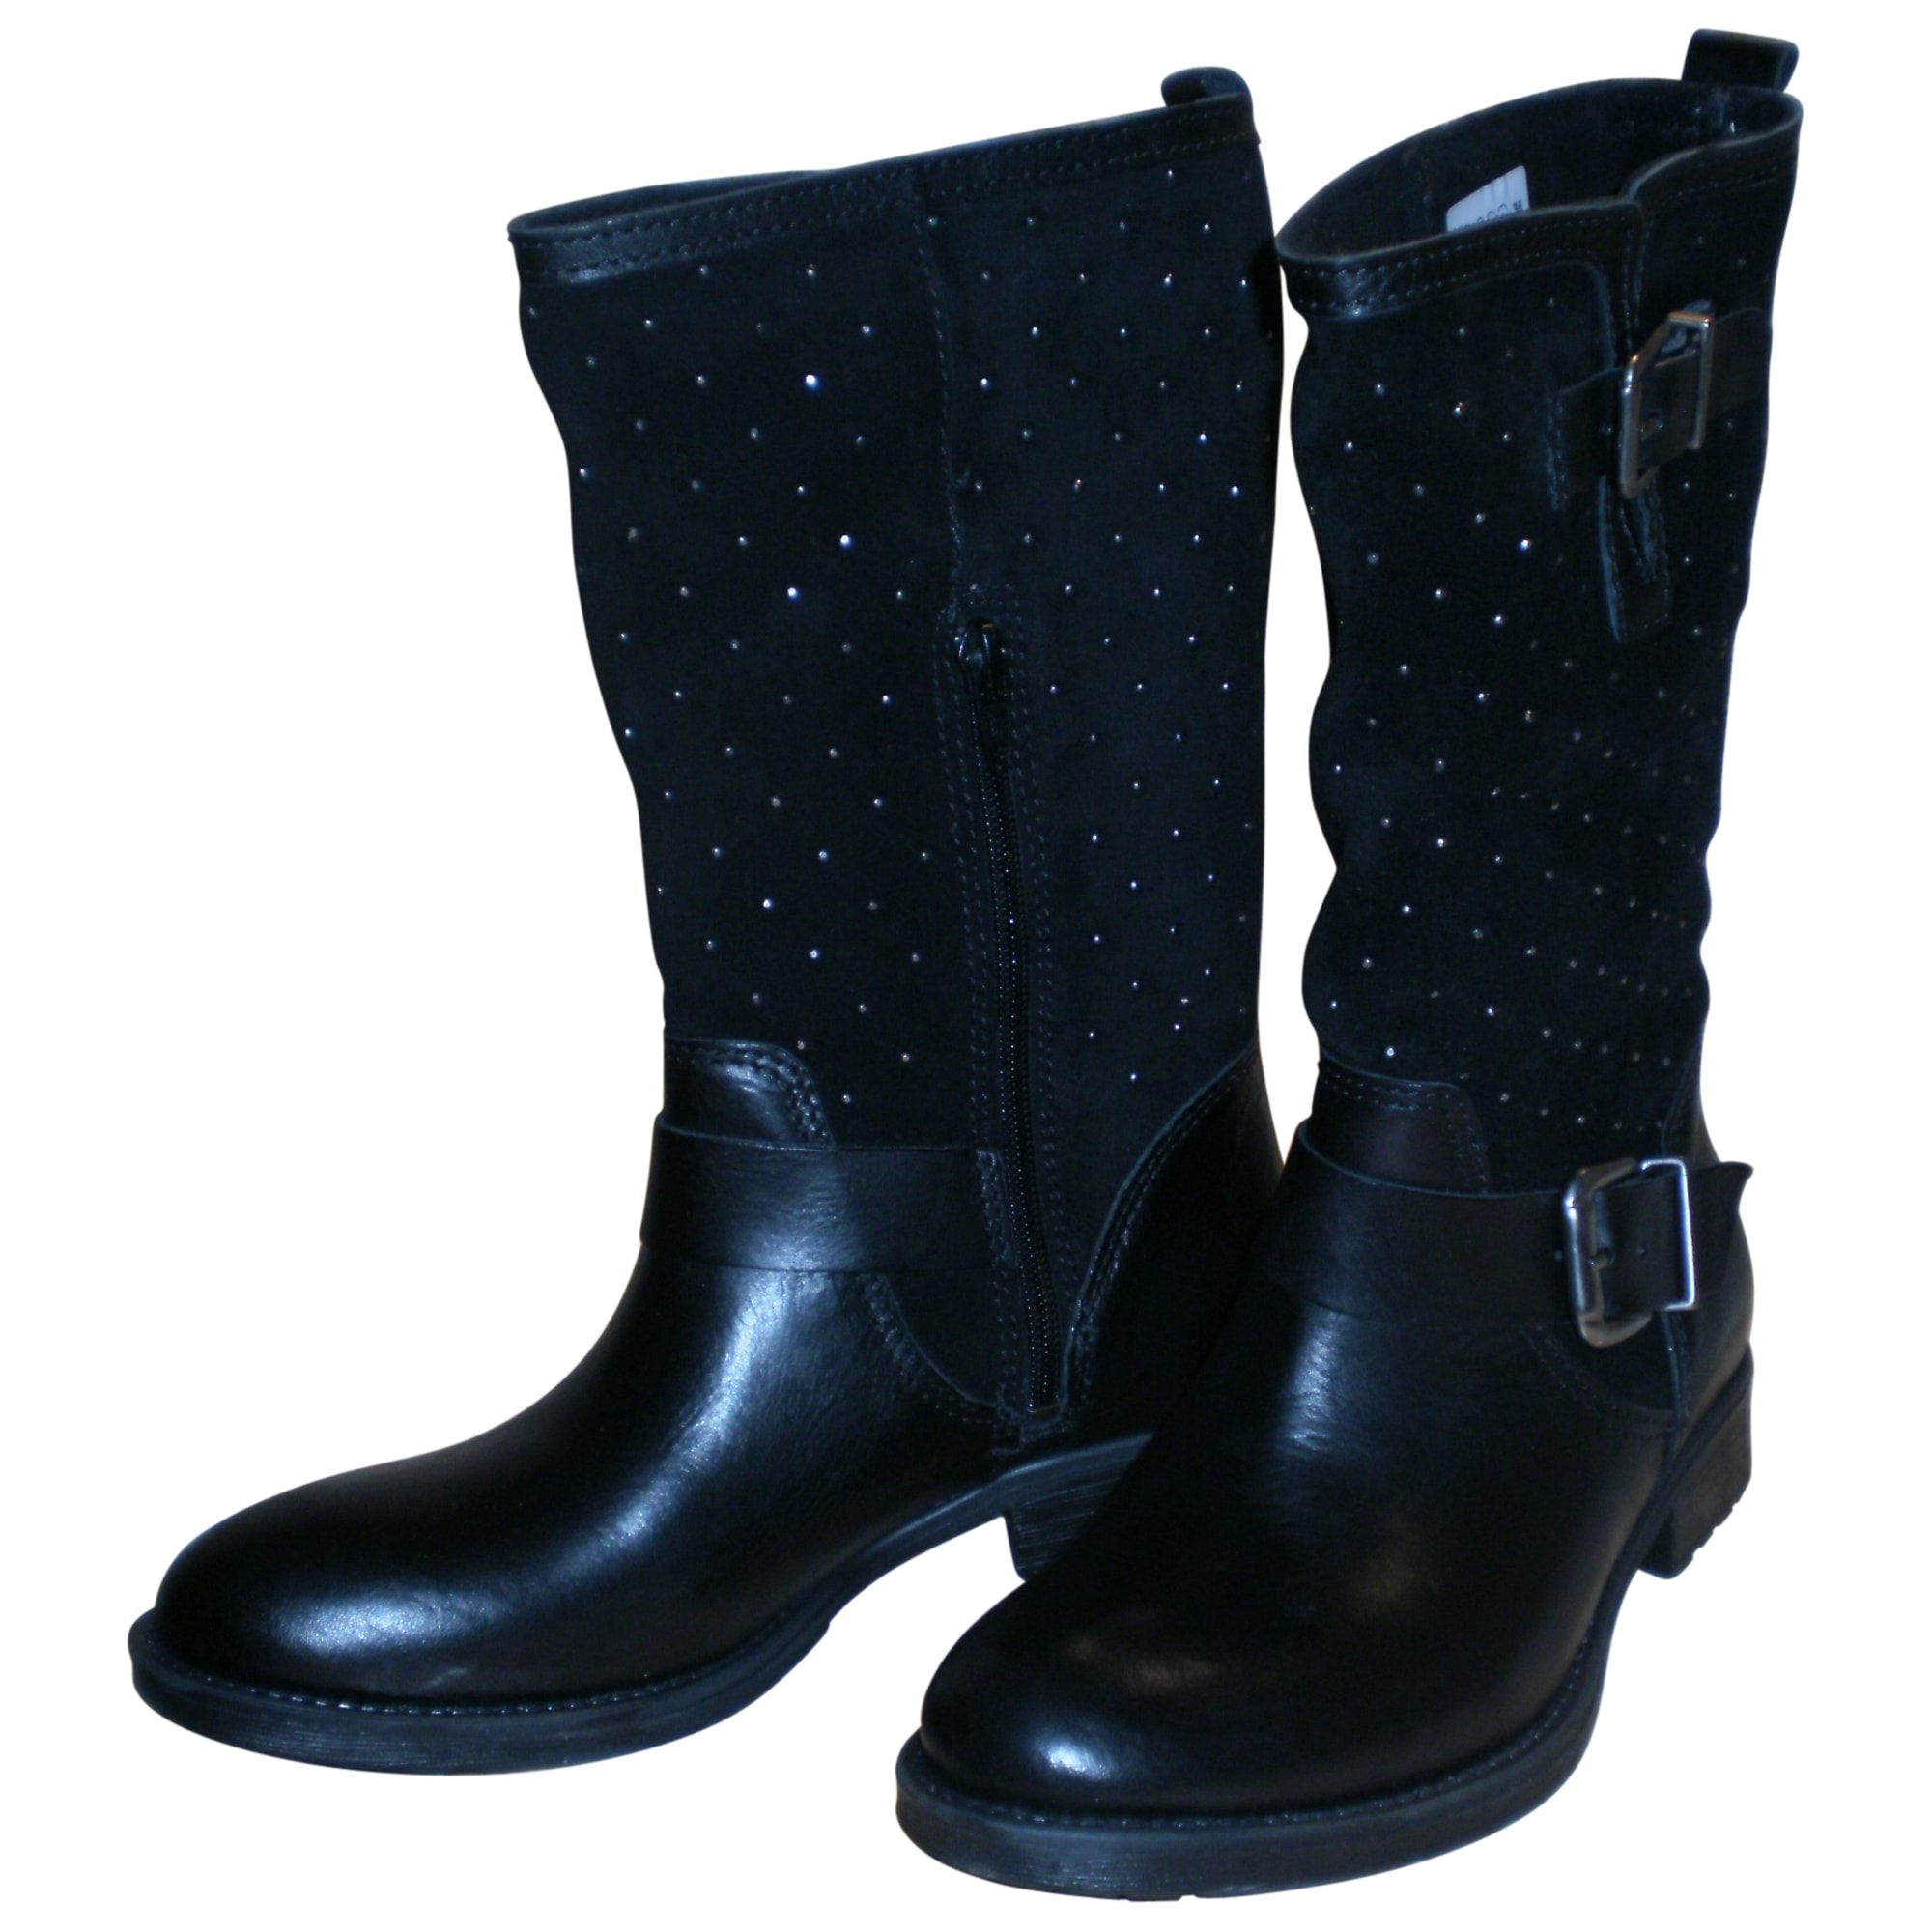 boots motards boots Bottineslow boots boots Bottineslow Bottineslow Bottineslow motards boots Bottineslow motards motards Bottineslow motards tshdrQC